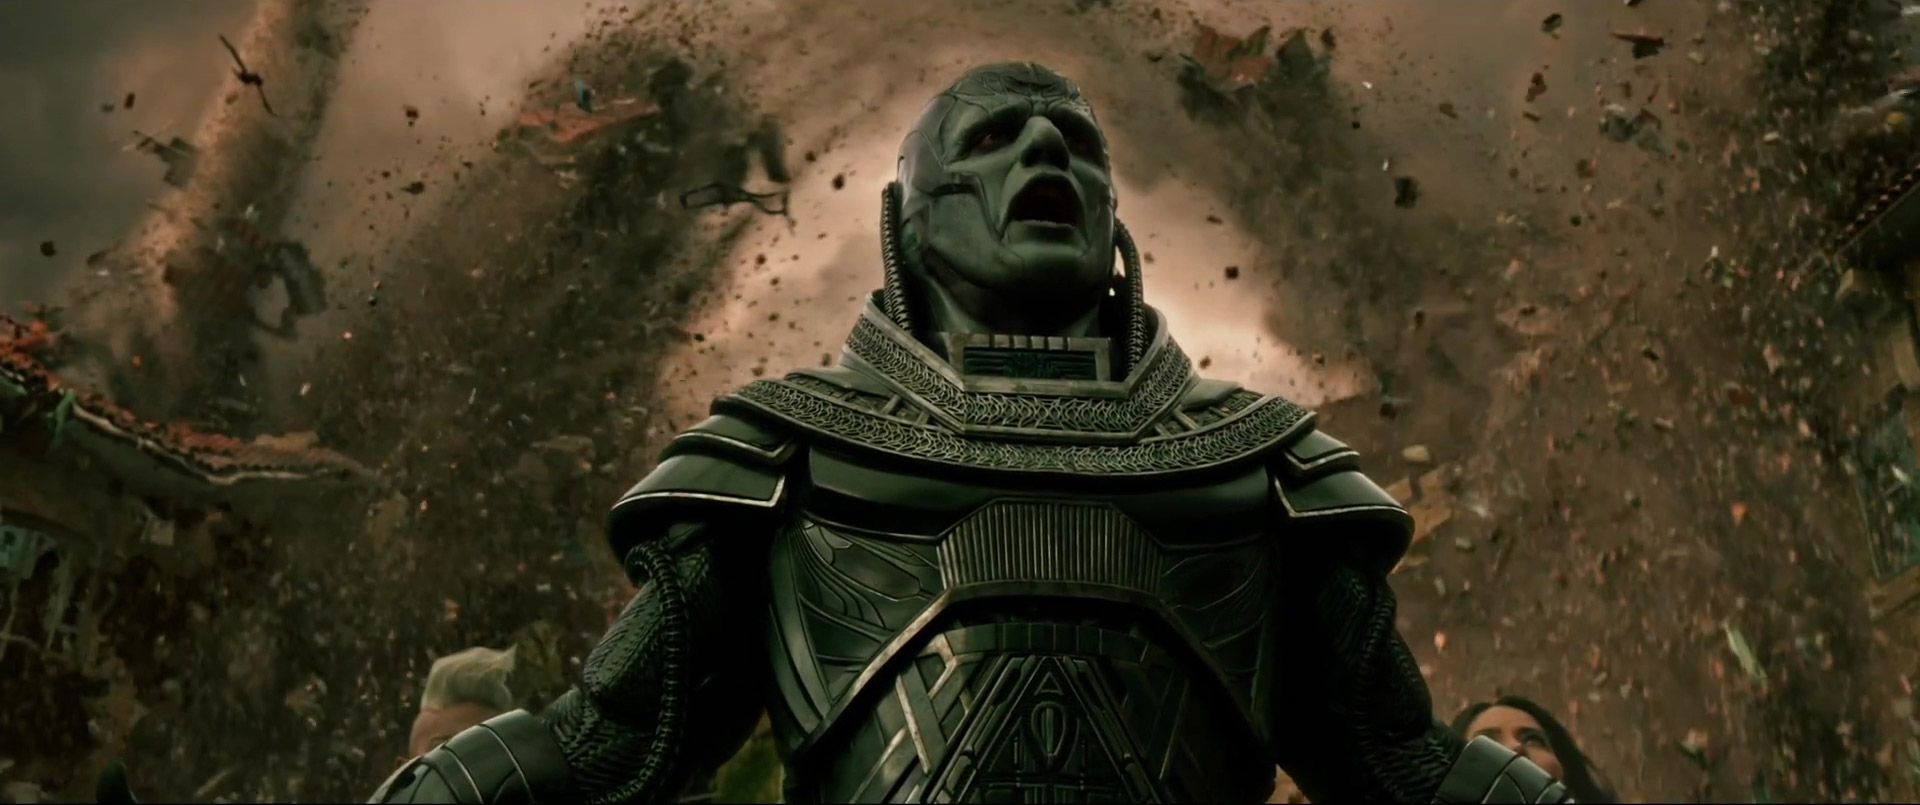 x-men-apocalypse-final-trailer-latest-pics